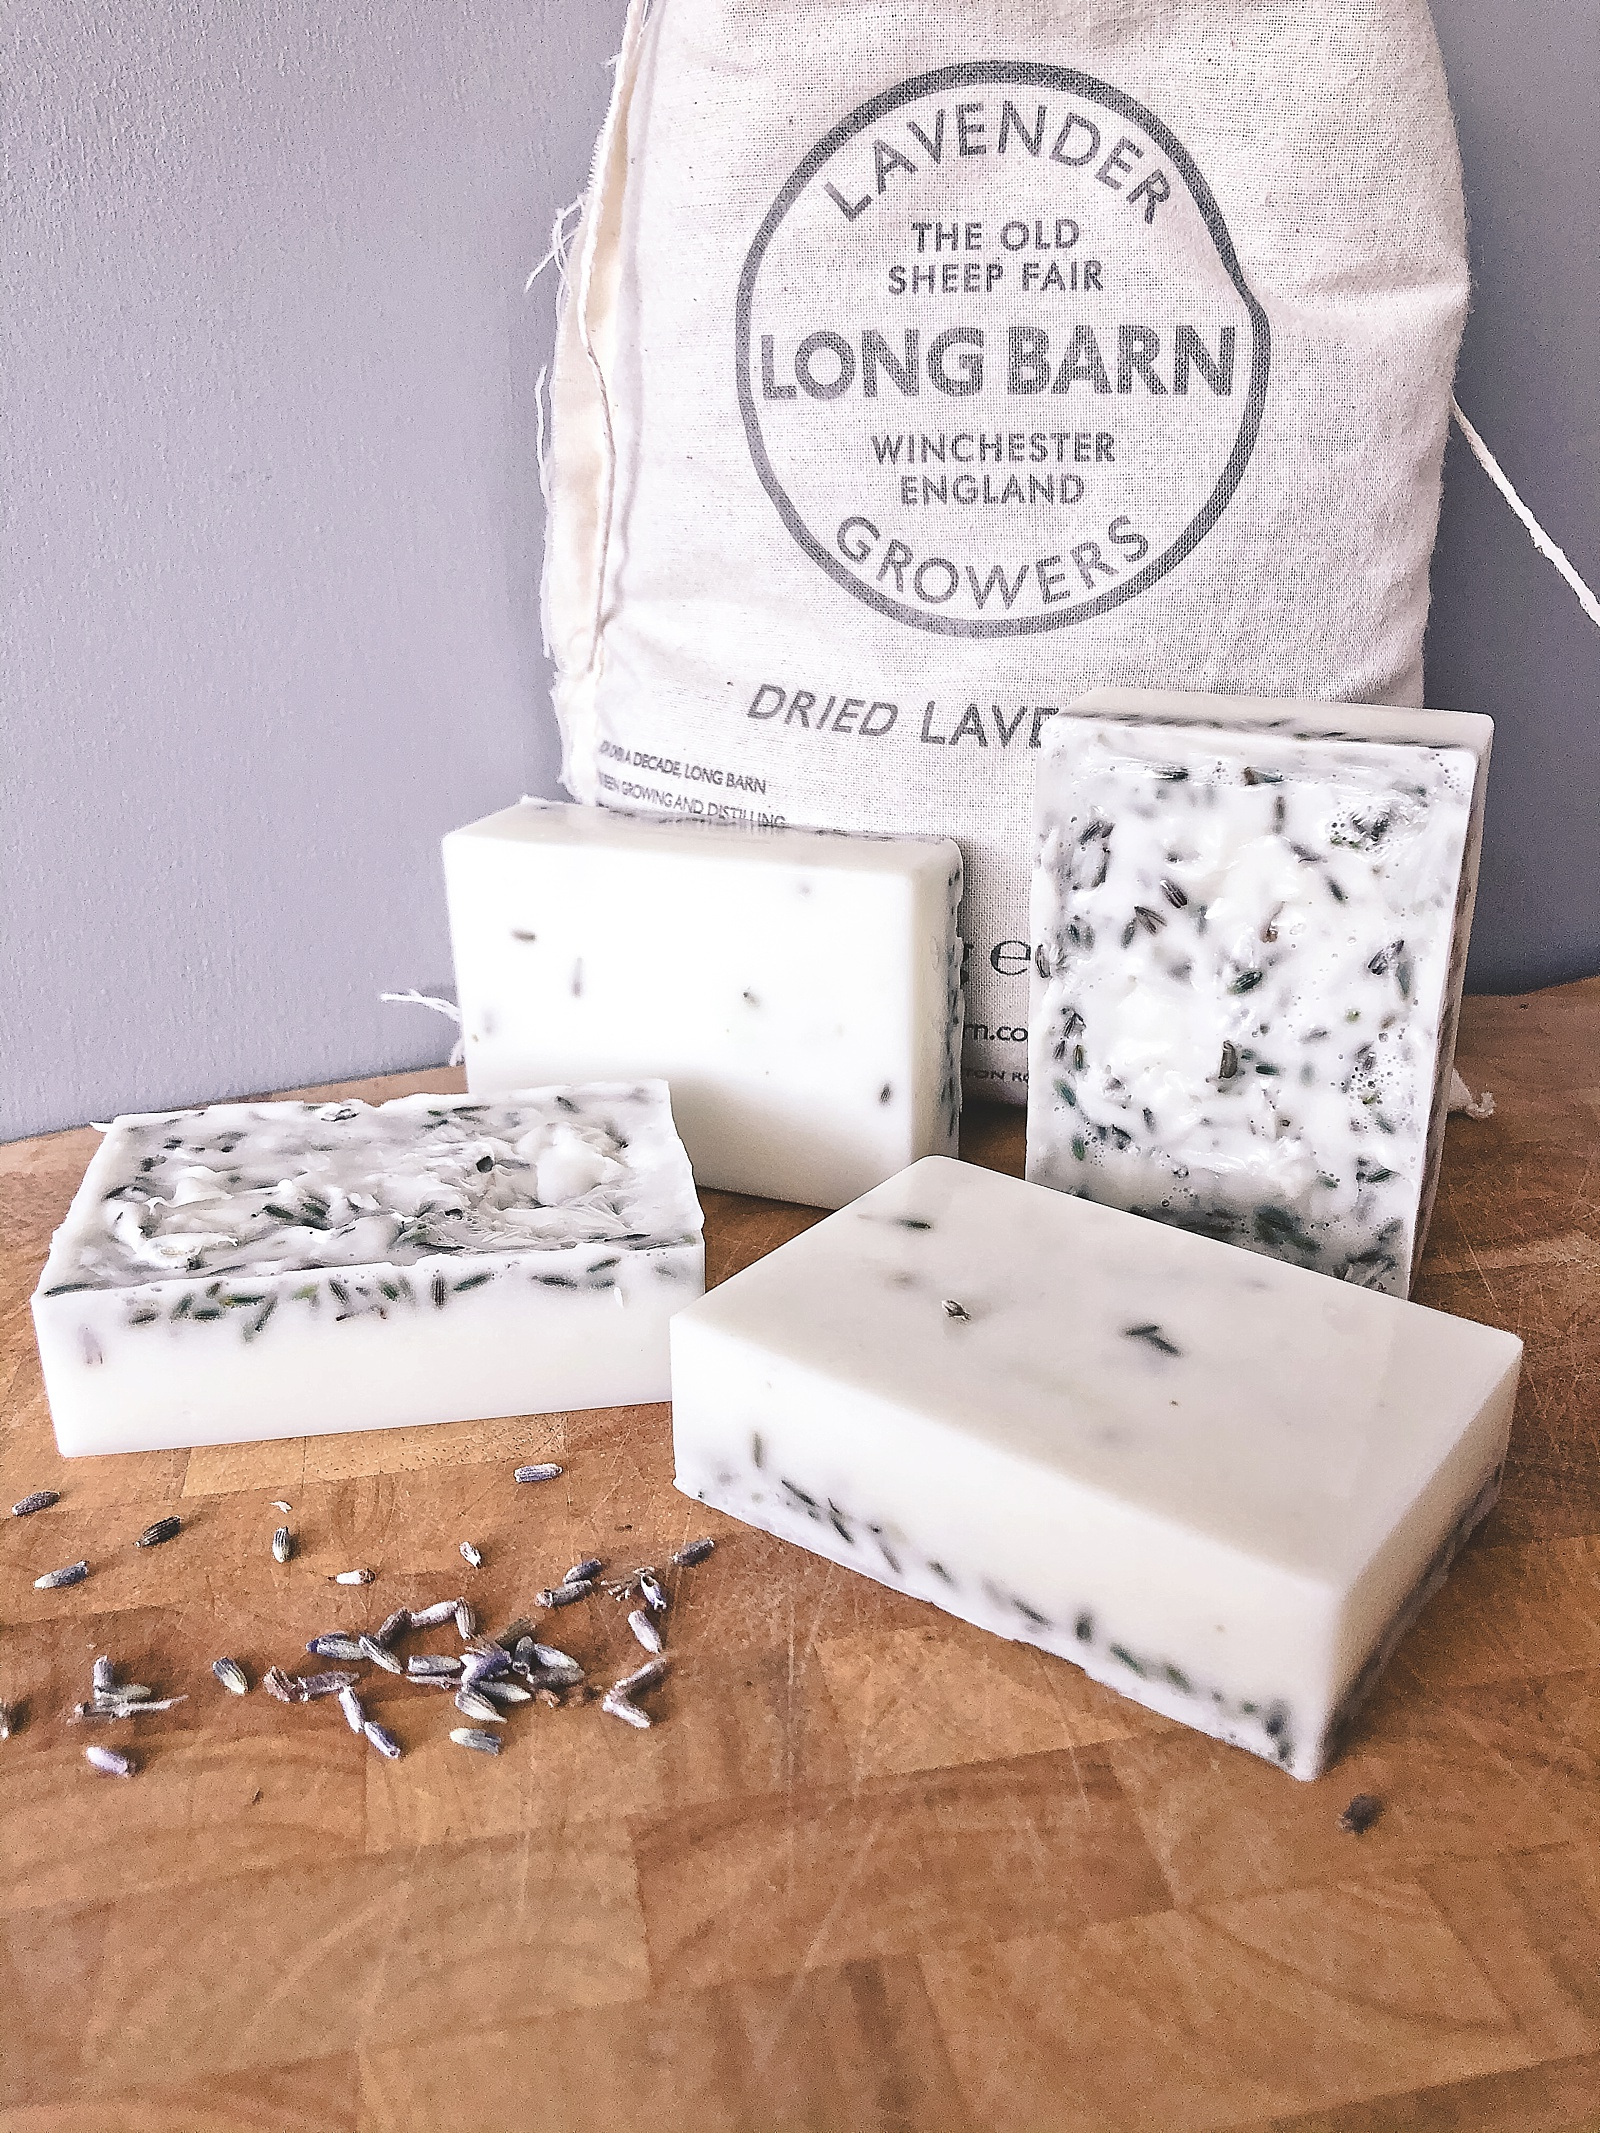 Easy make your own soap with English lavender